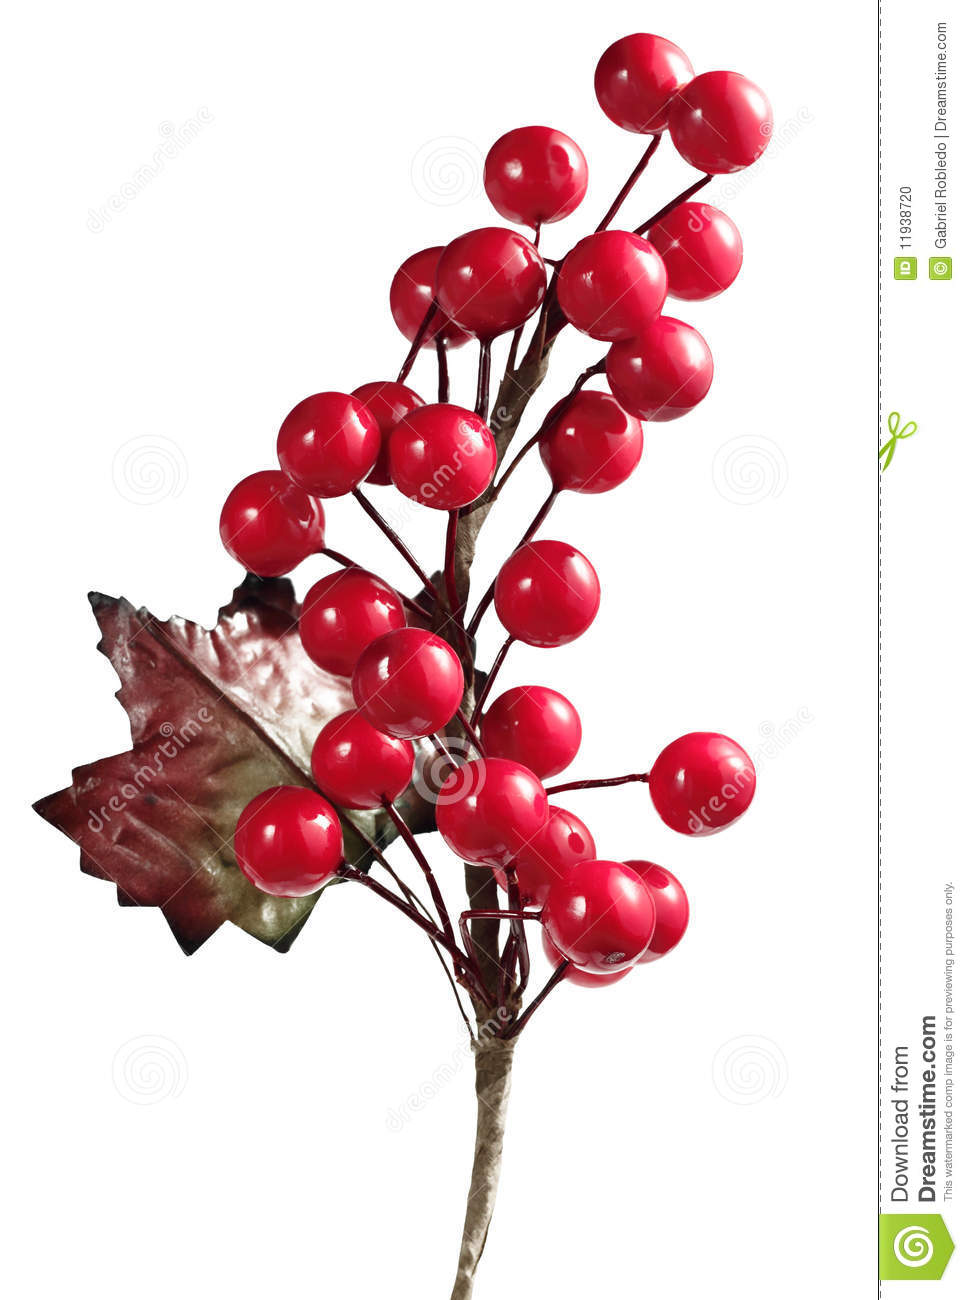 Christmas Cherry Stock Photo - Image: 11938720